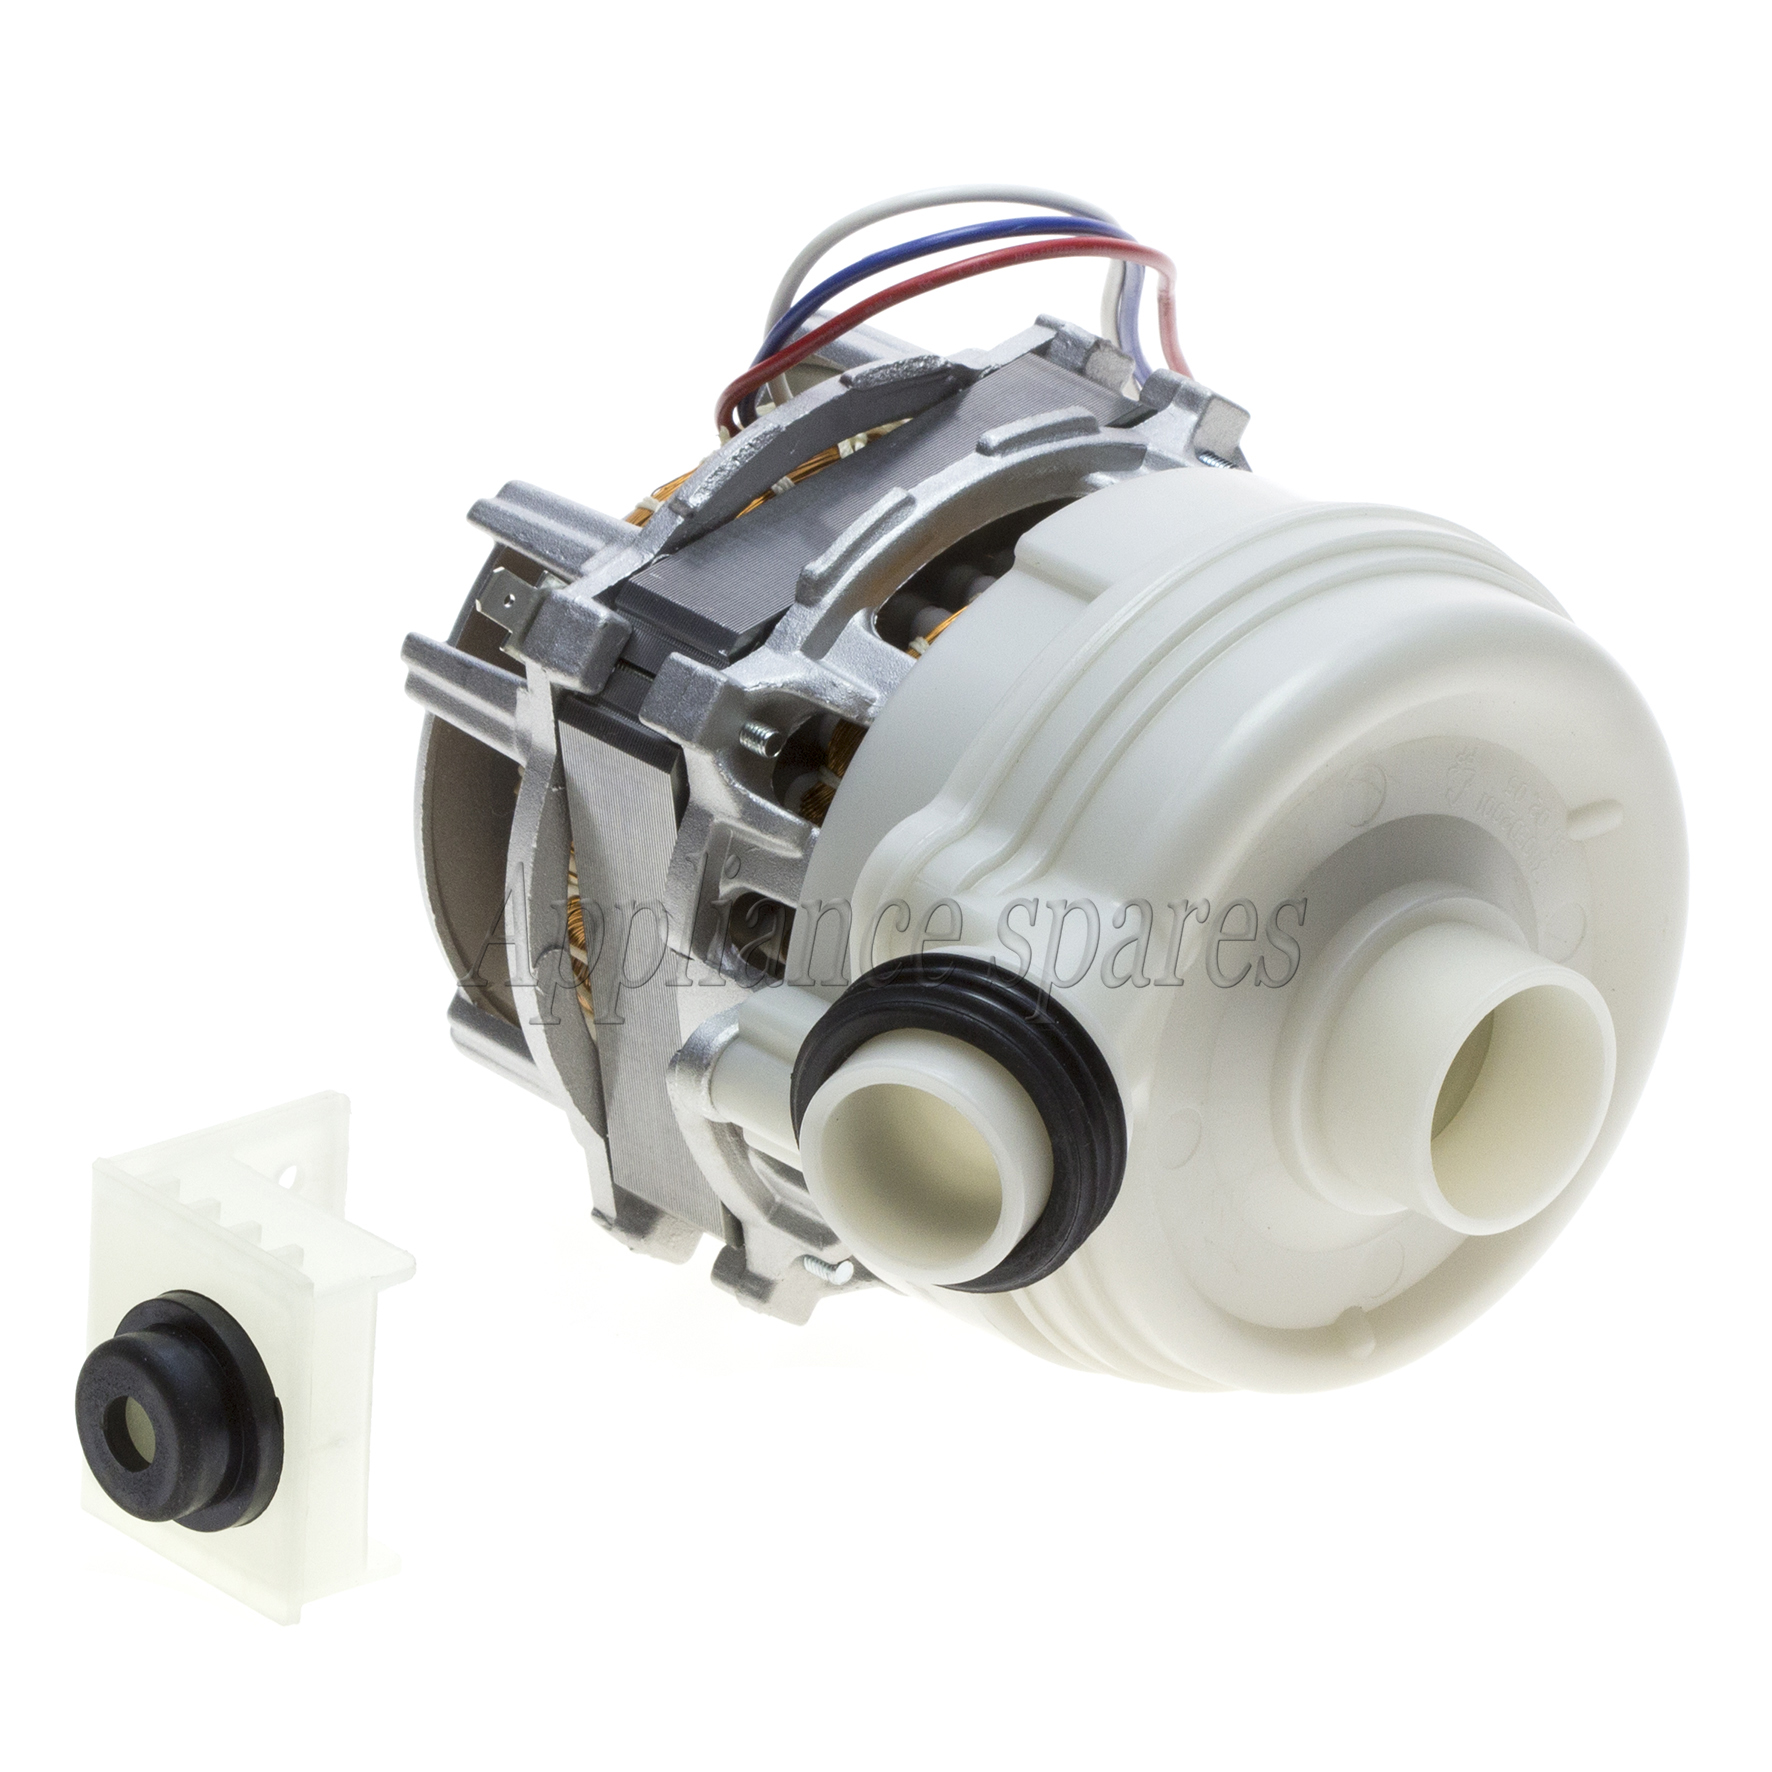 LG DISHWASHER MAIN PUMP ASSEMBLY